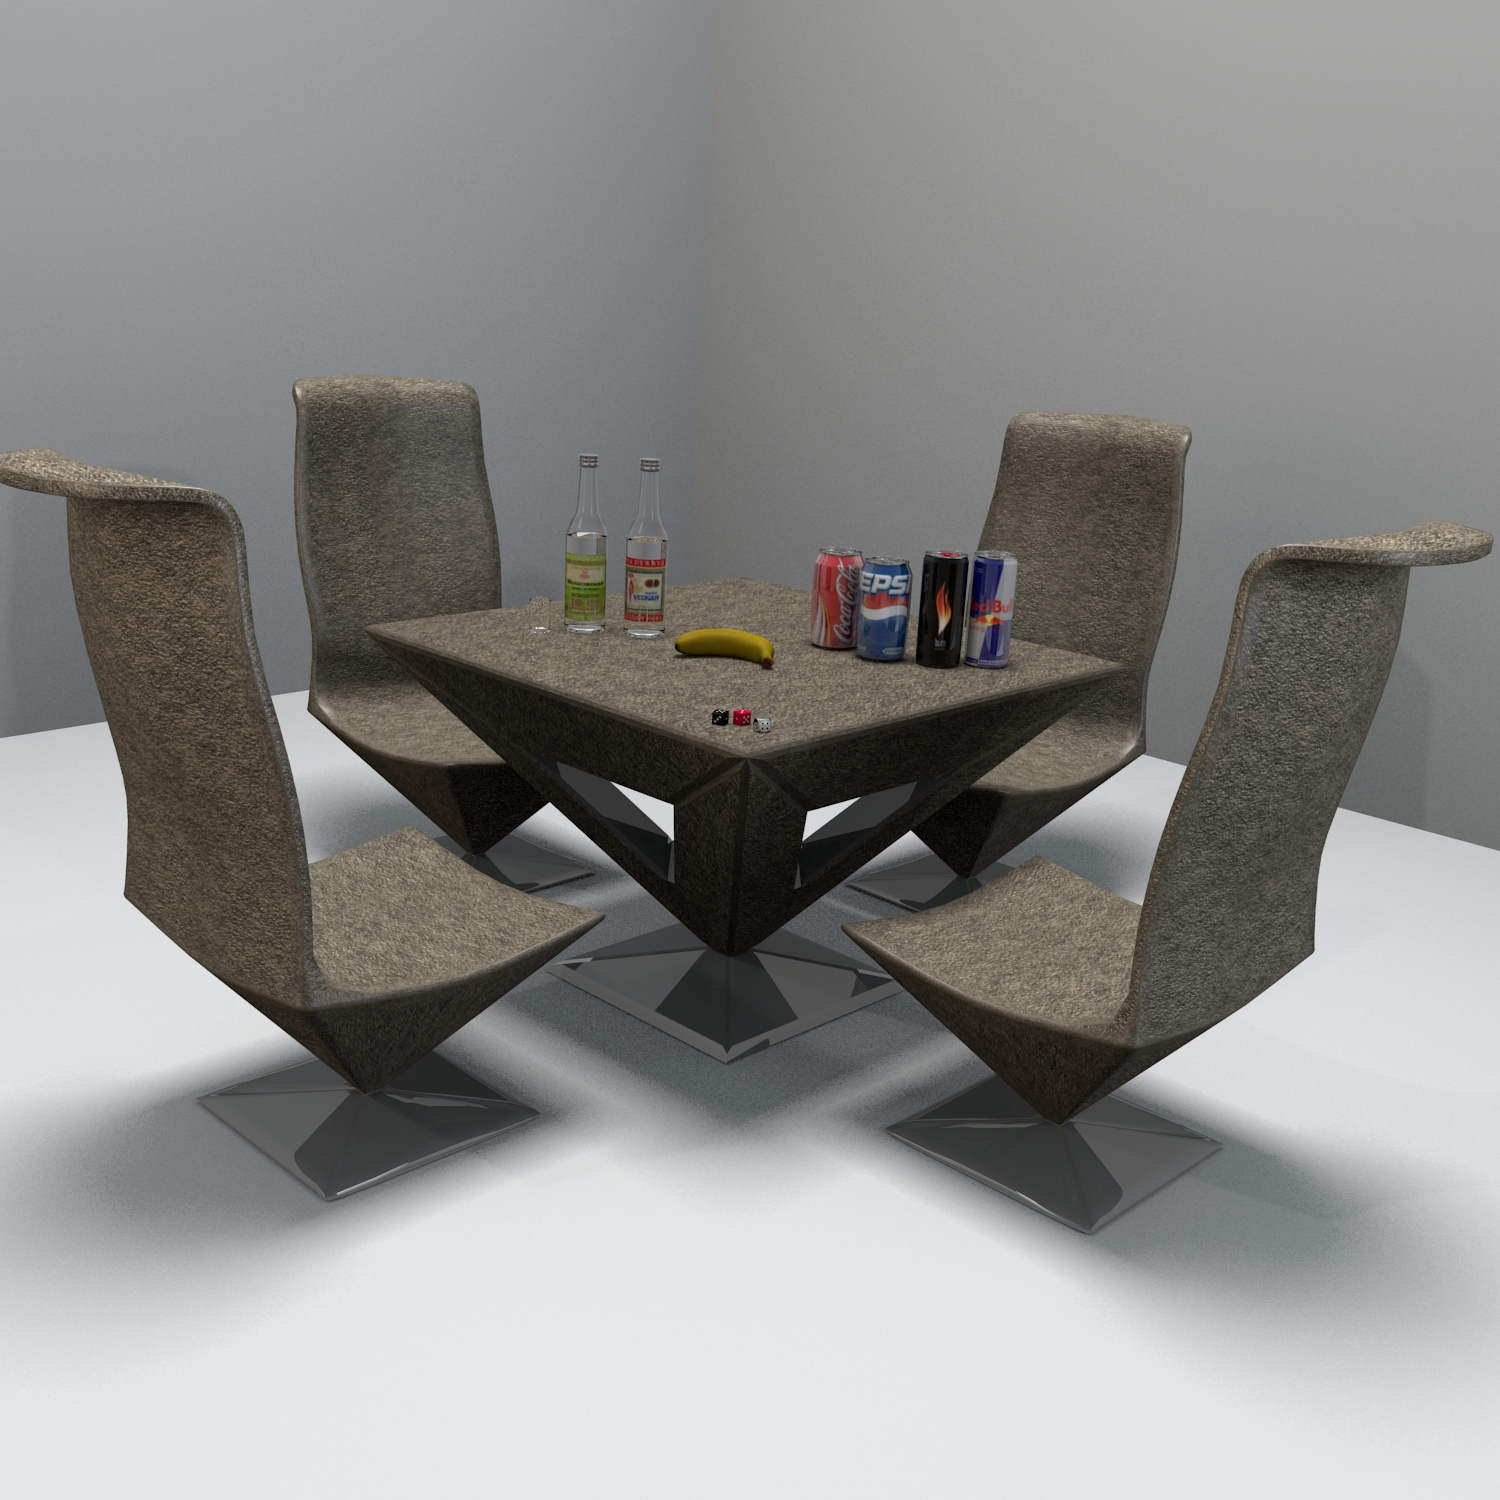 Pyramid Table And Chair by Reticulum